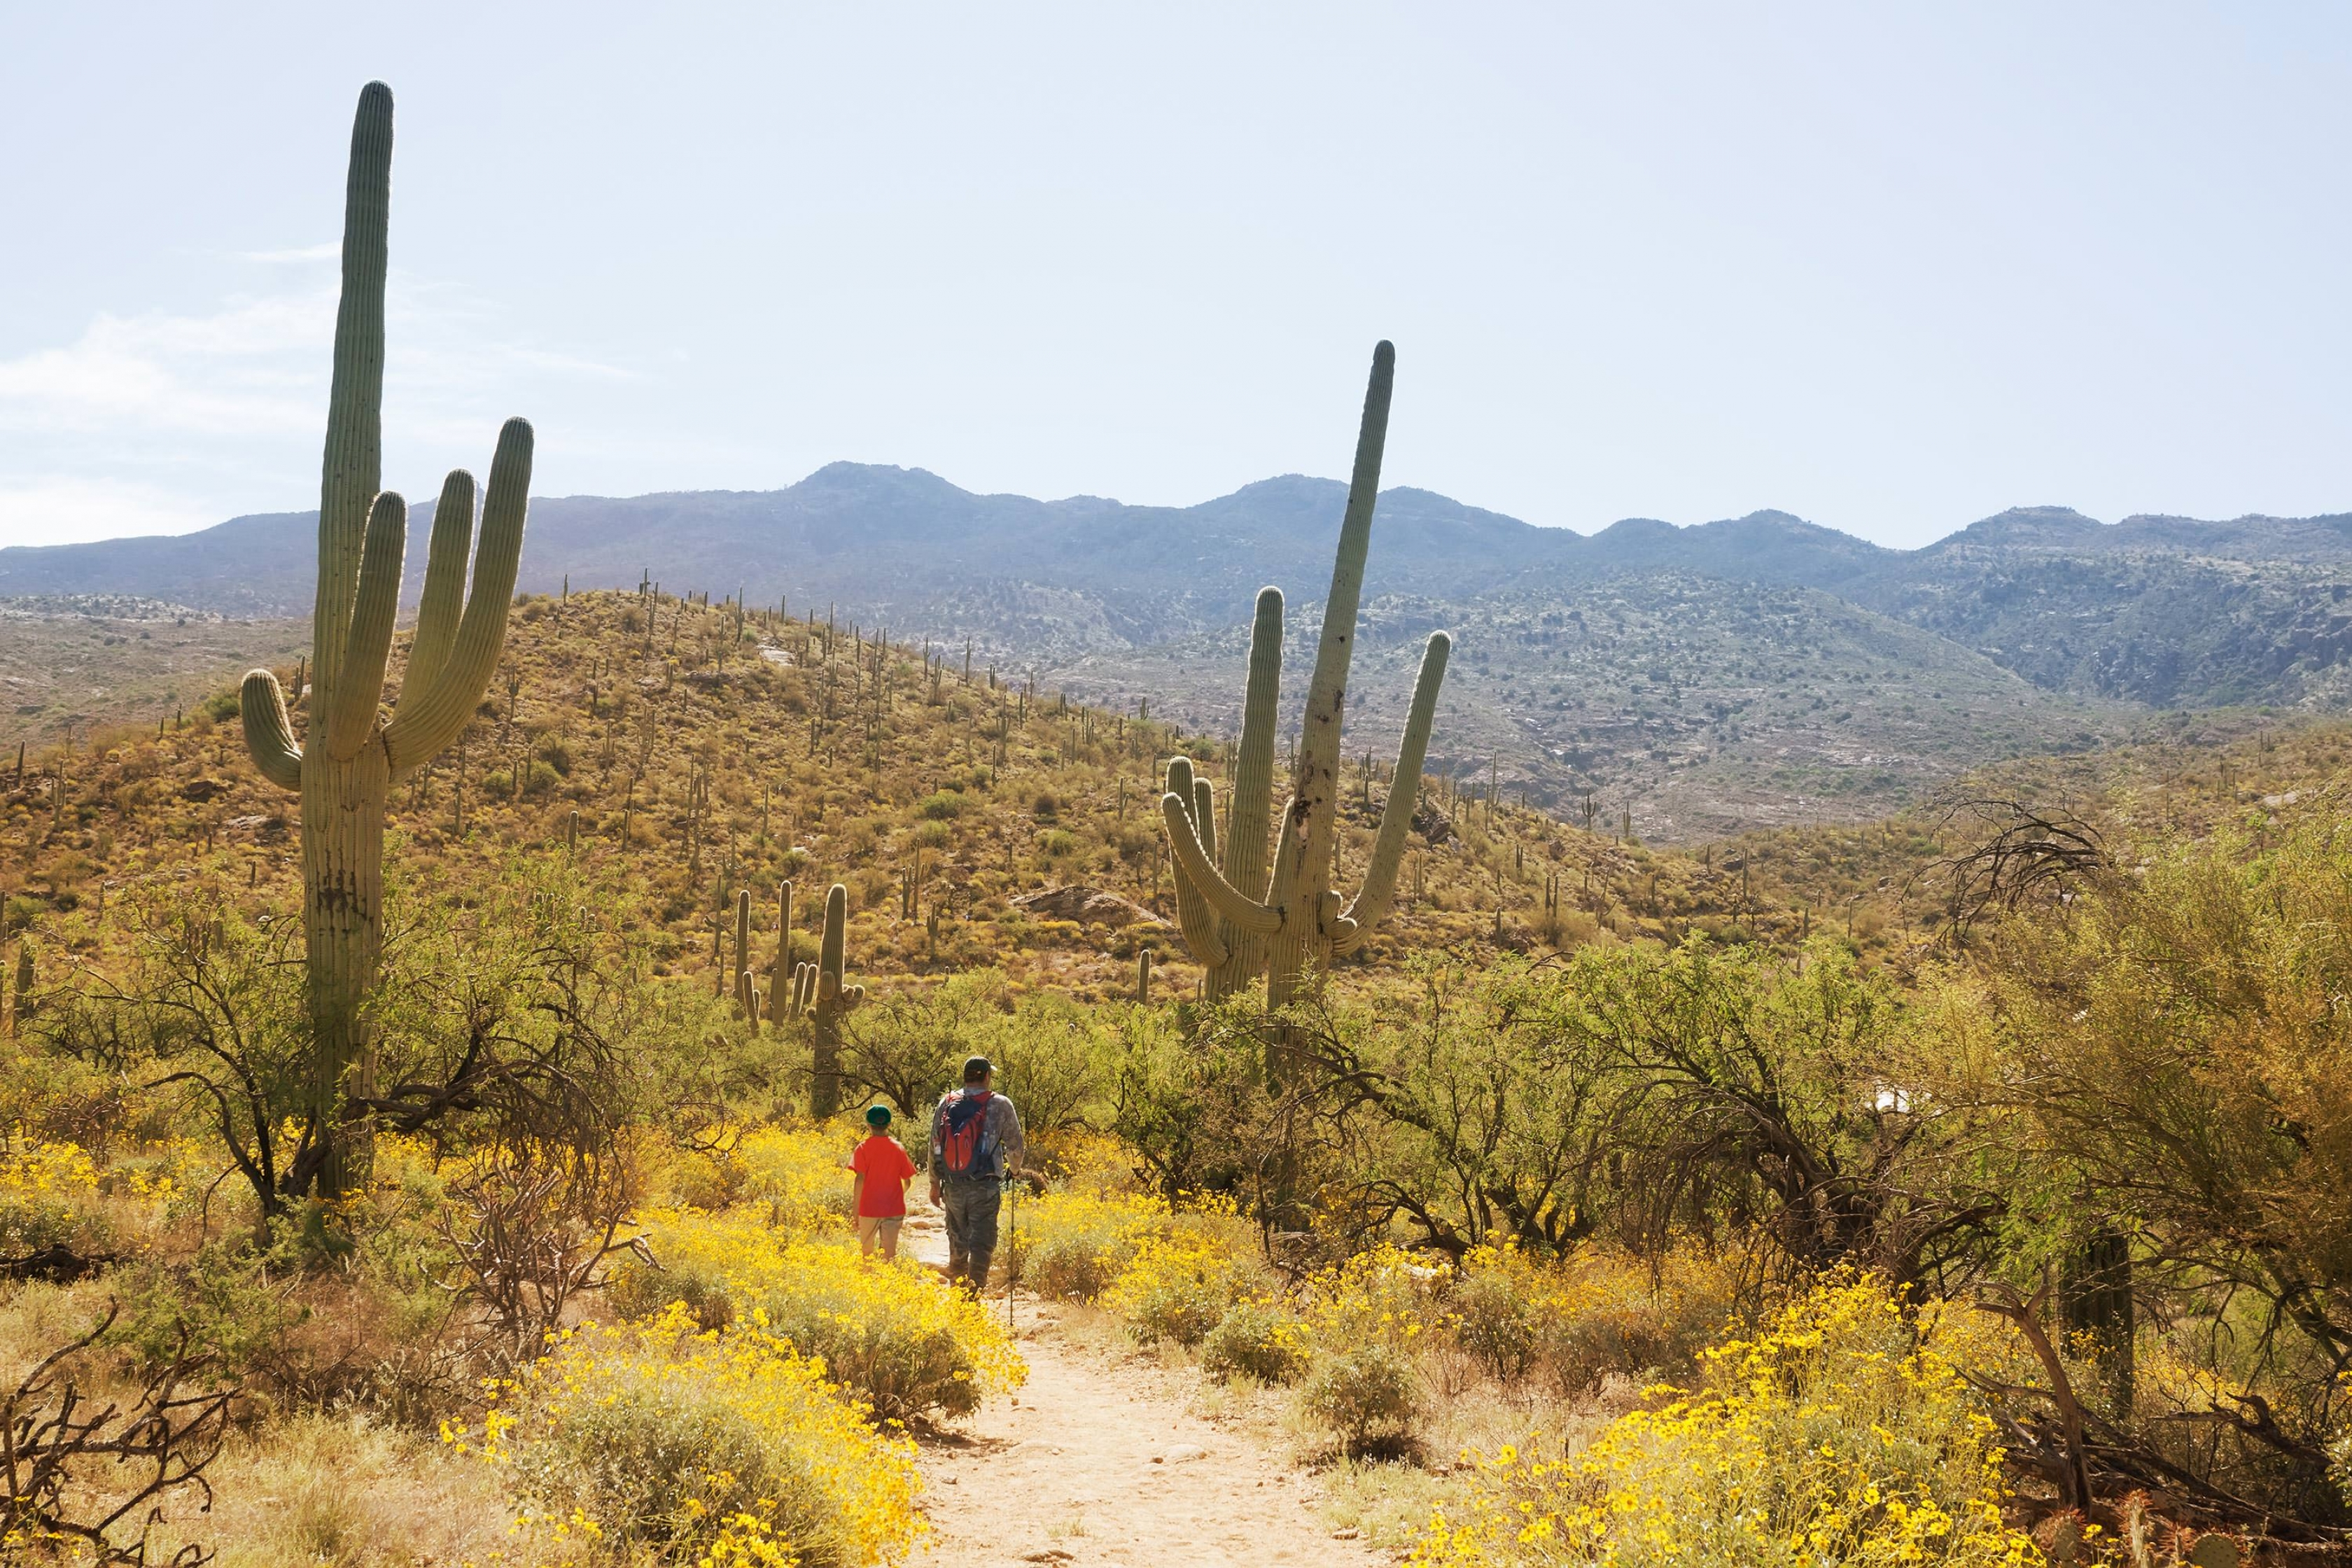 A father and son walk through cacti at Saguaro.